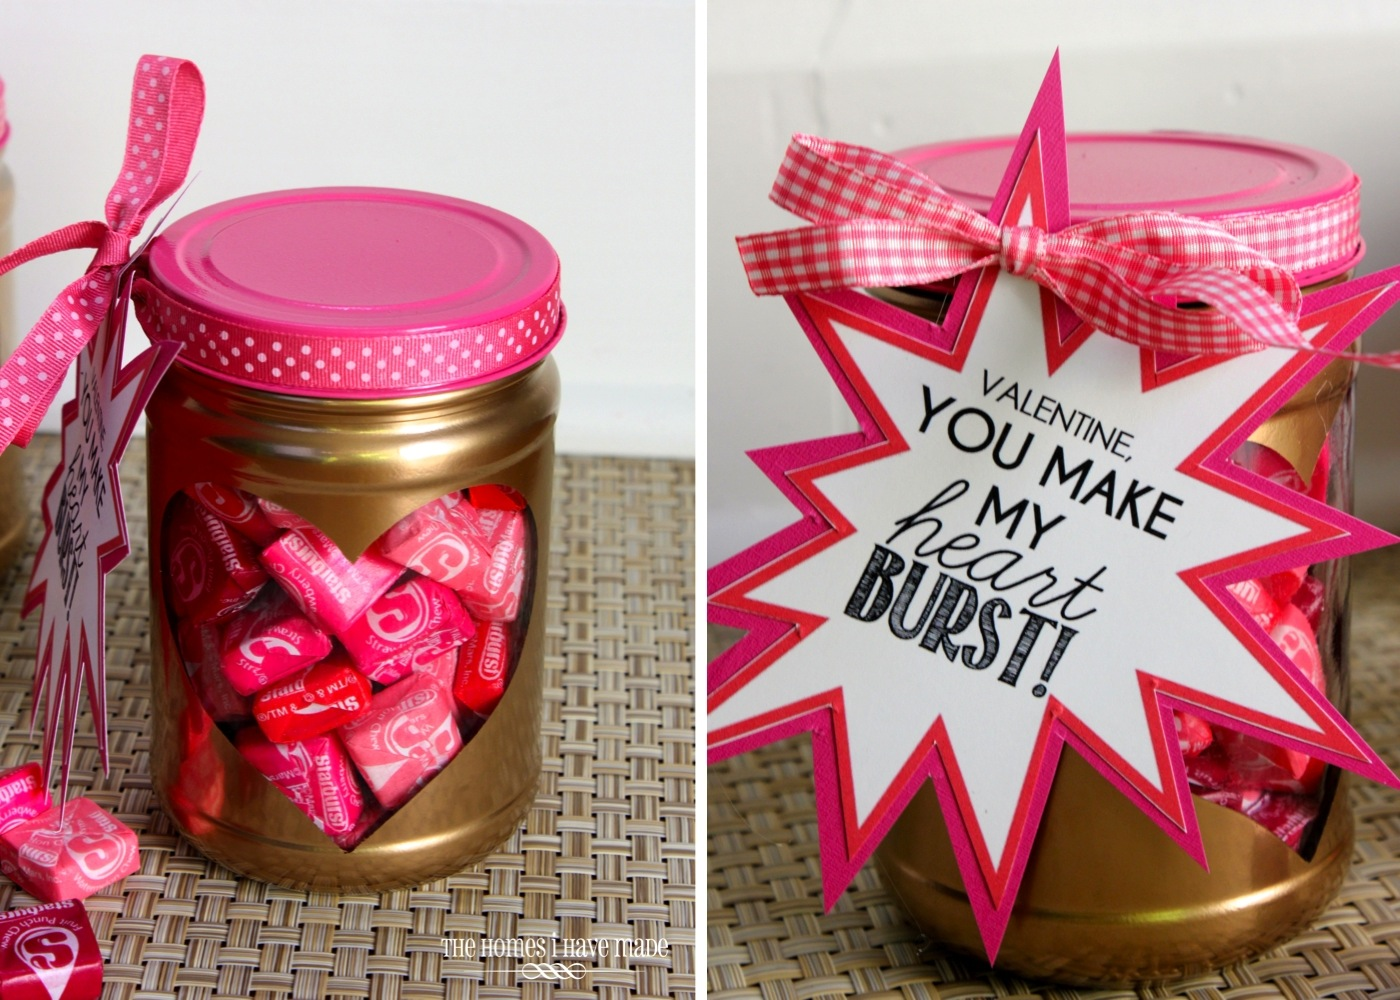 100 31 days of christmas gifting in mason jars craft ideas